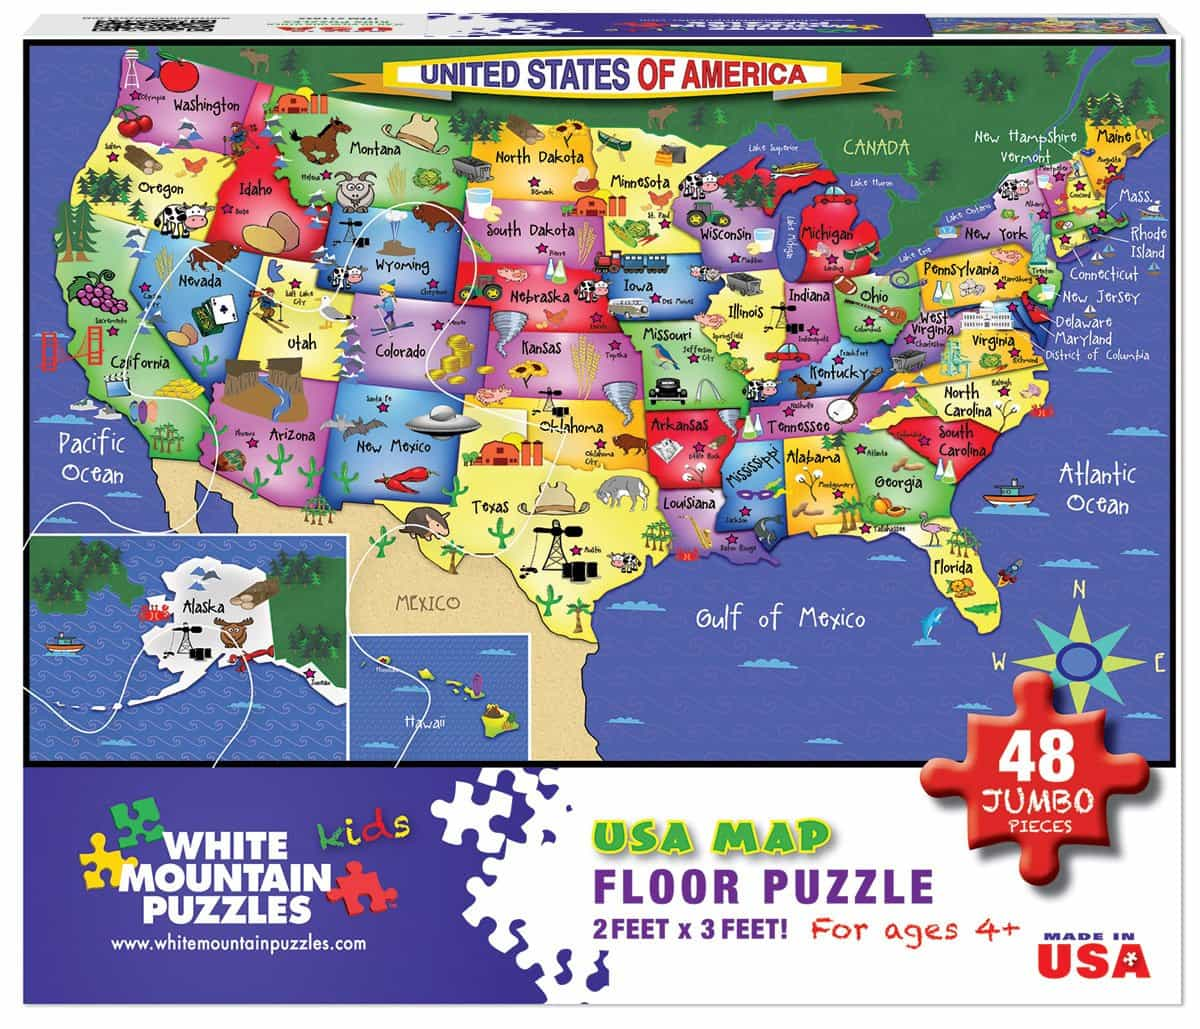 U S Map Floor Puzzle 48 Piece Jigsaw Puzzle White Mountain Puzzles - Puzzle-us-map